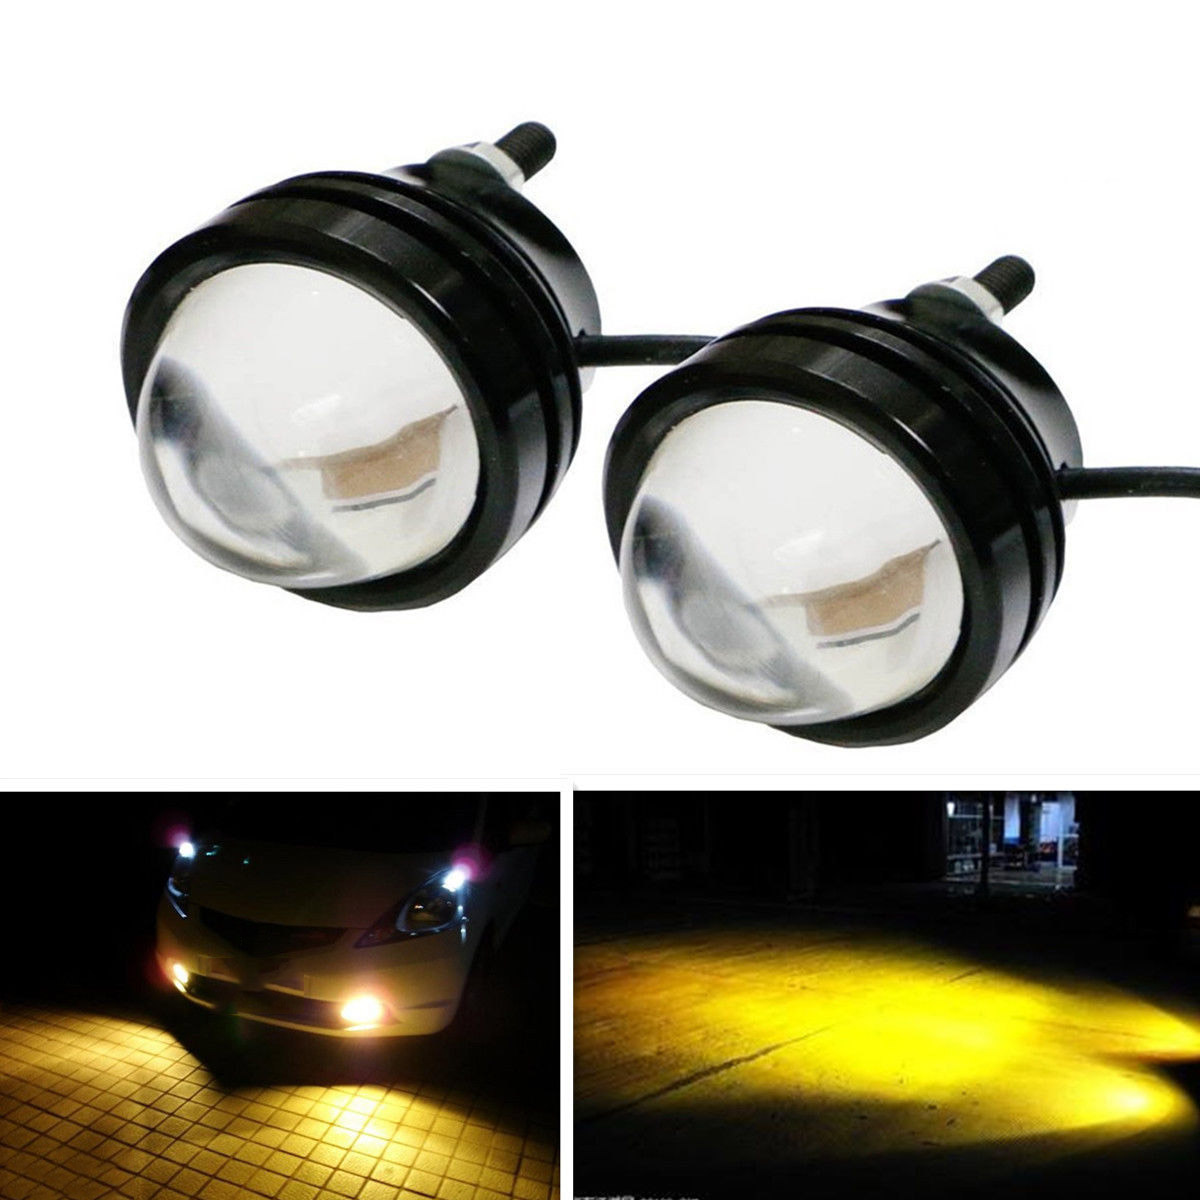 2x high power car golden eye yellow 5w led projector fog for Mirror micro projector